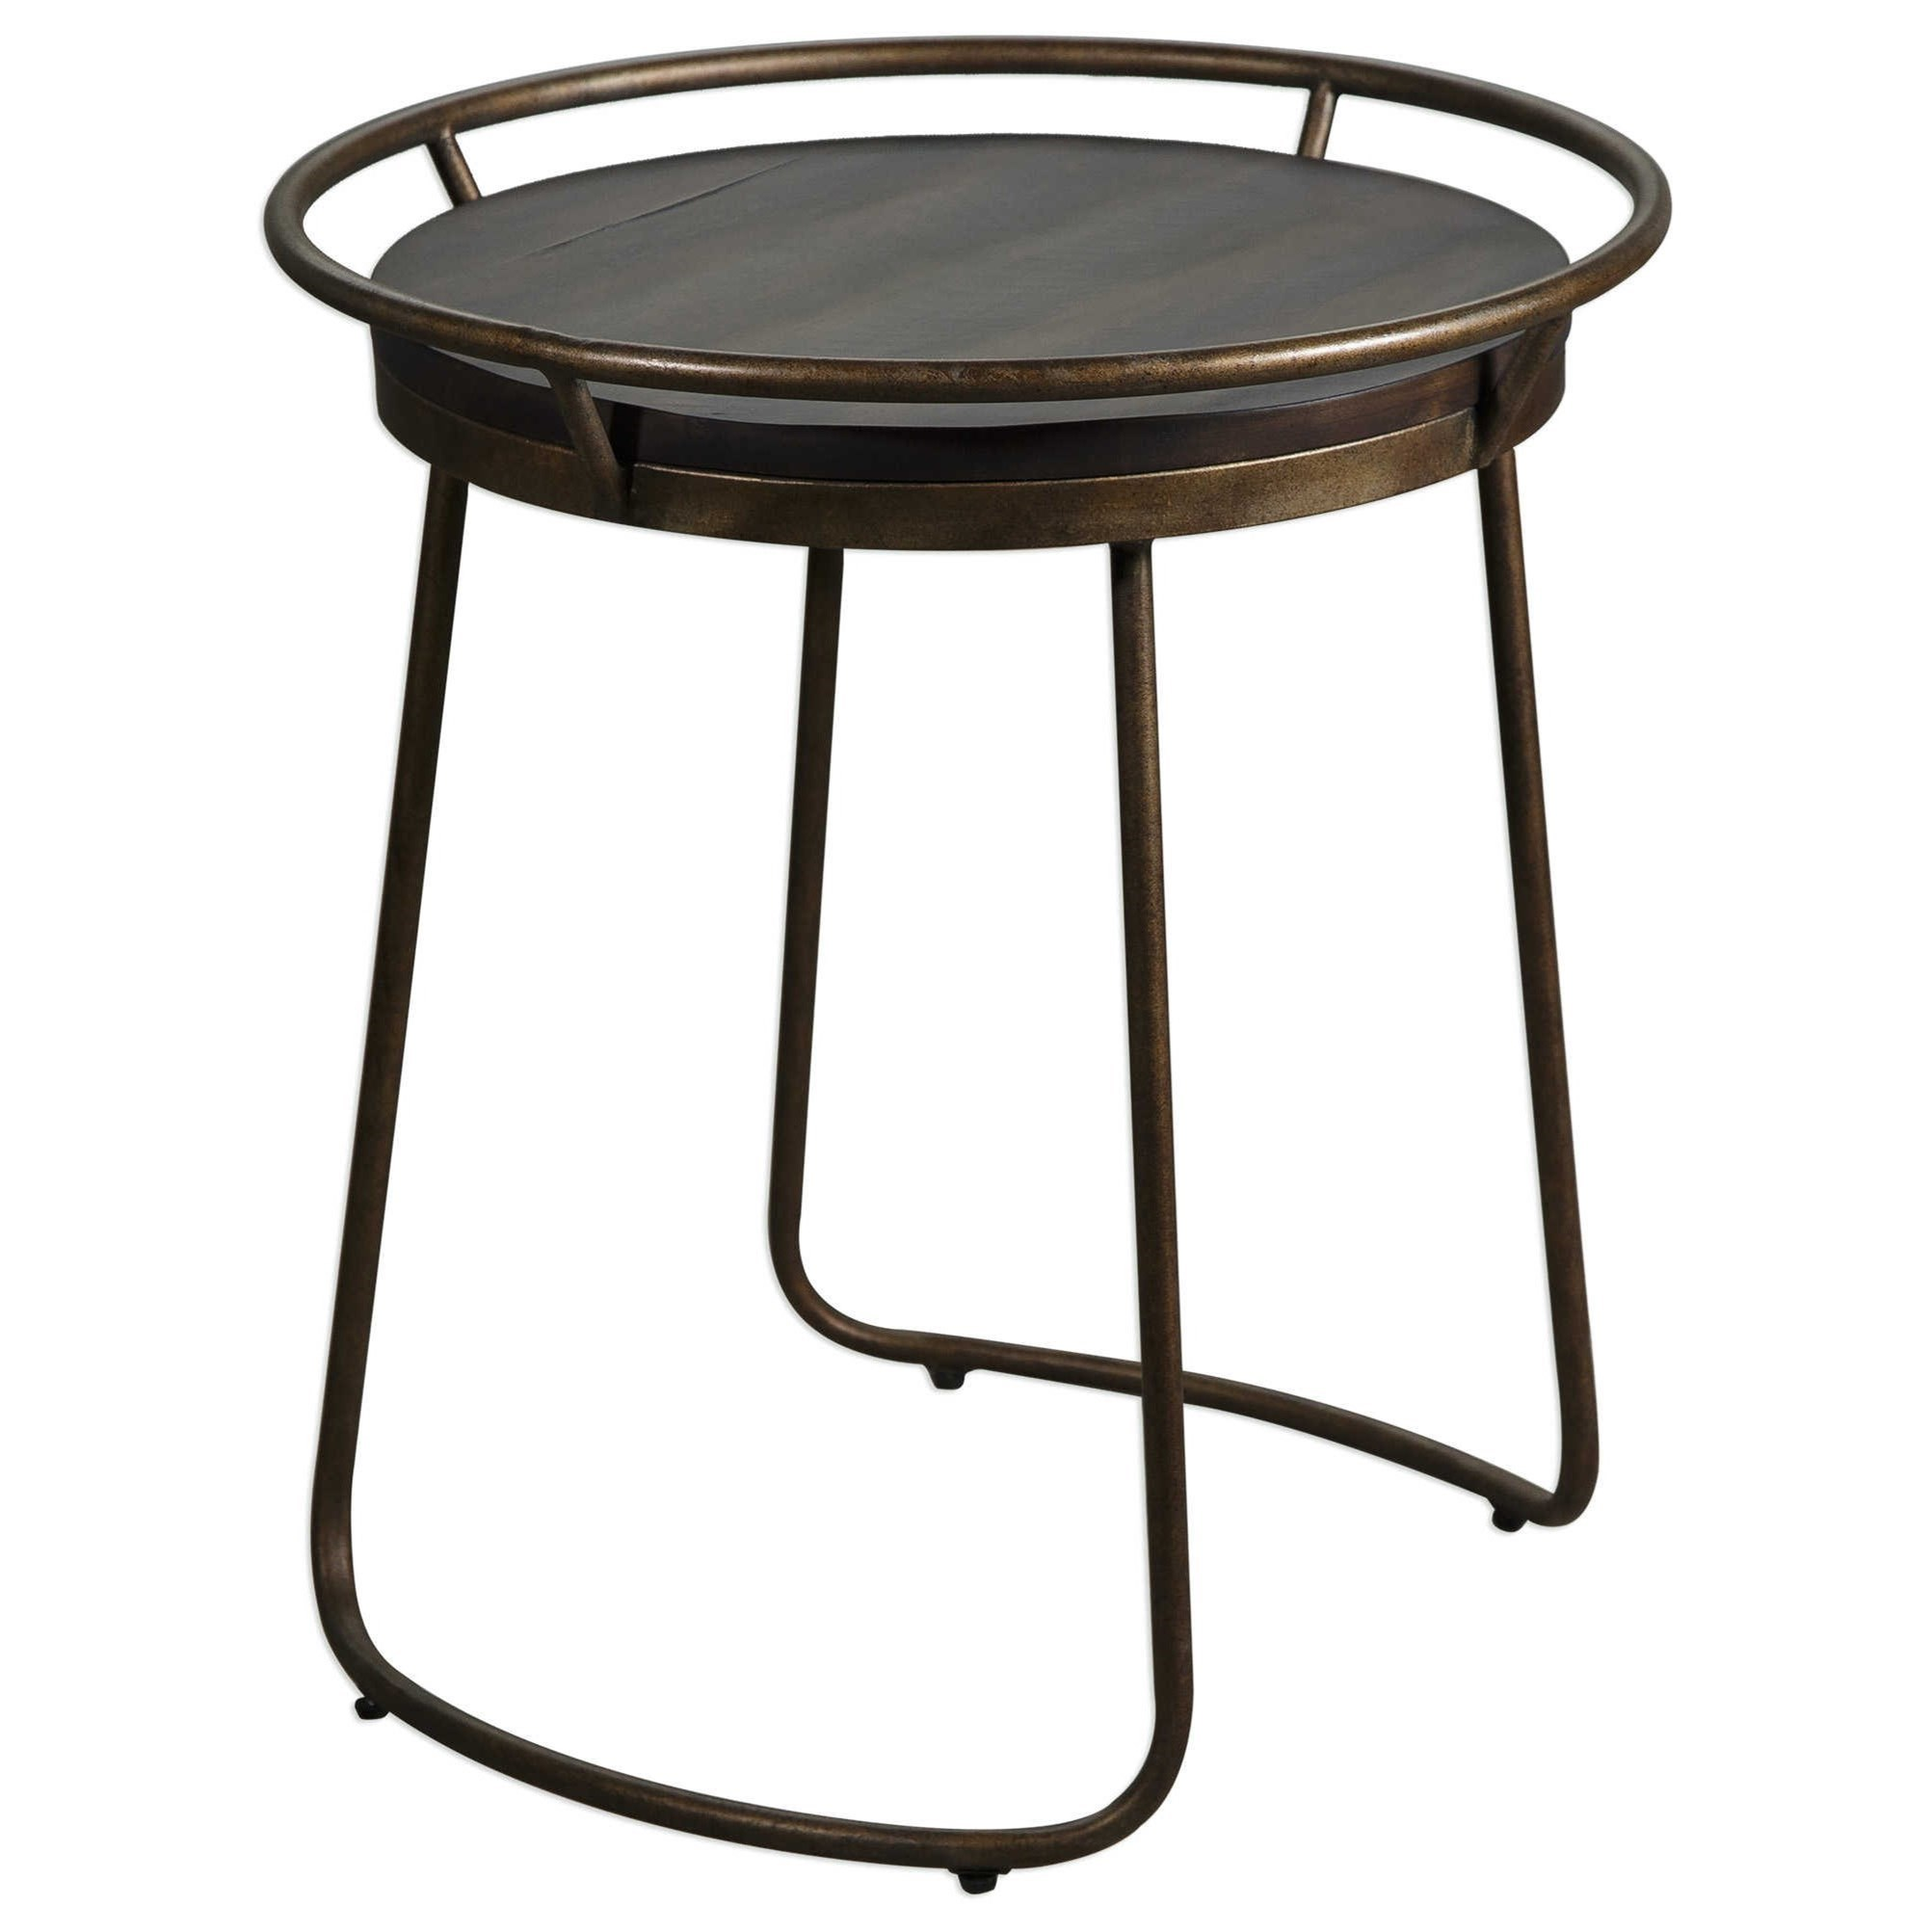 Medium image of uttermost accent furniture rayen round accent table   darvin furniture   end tables